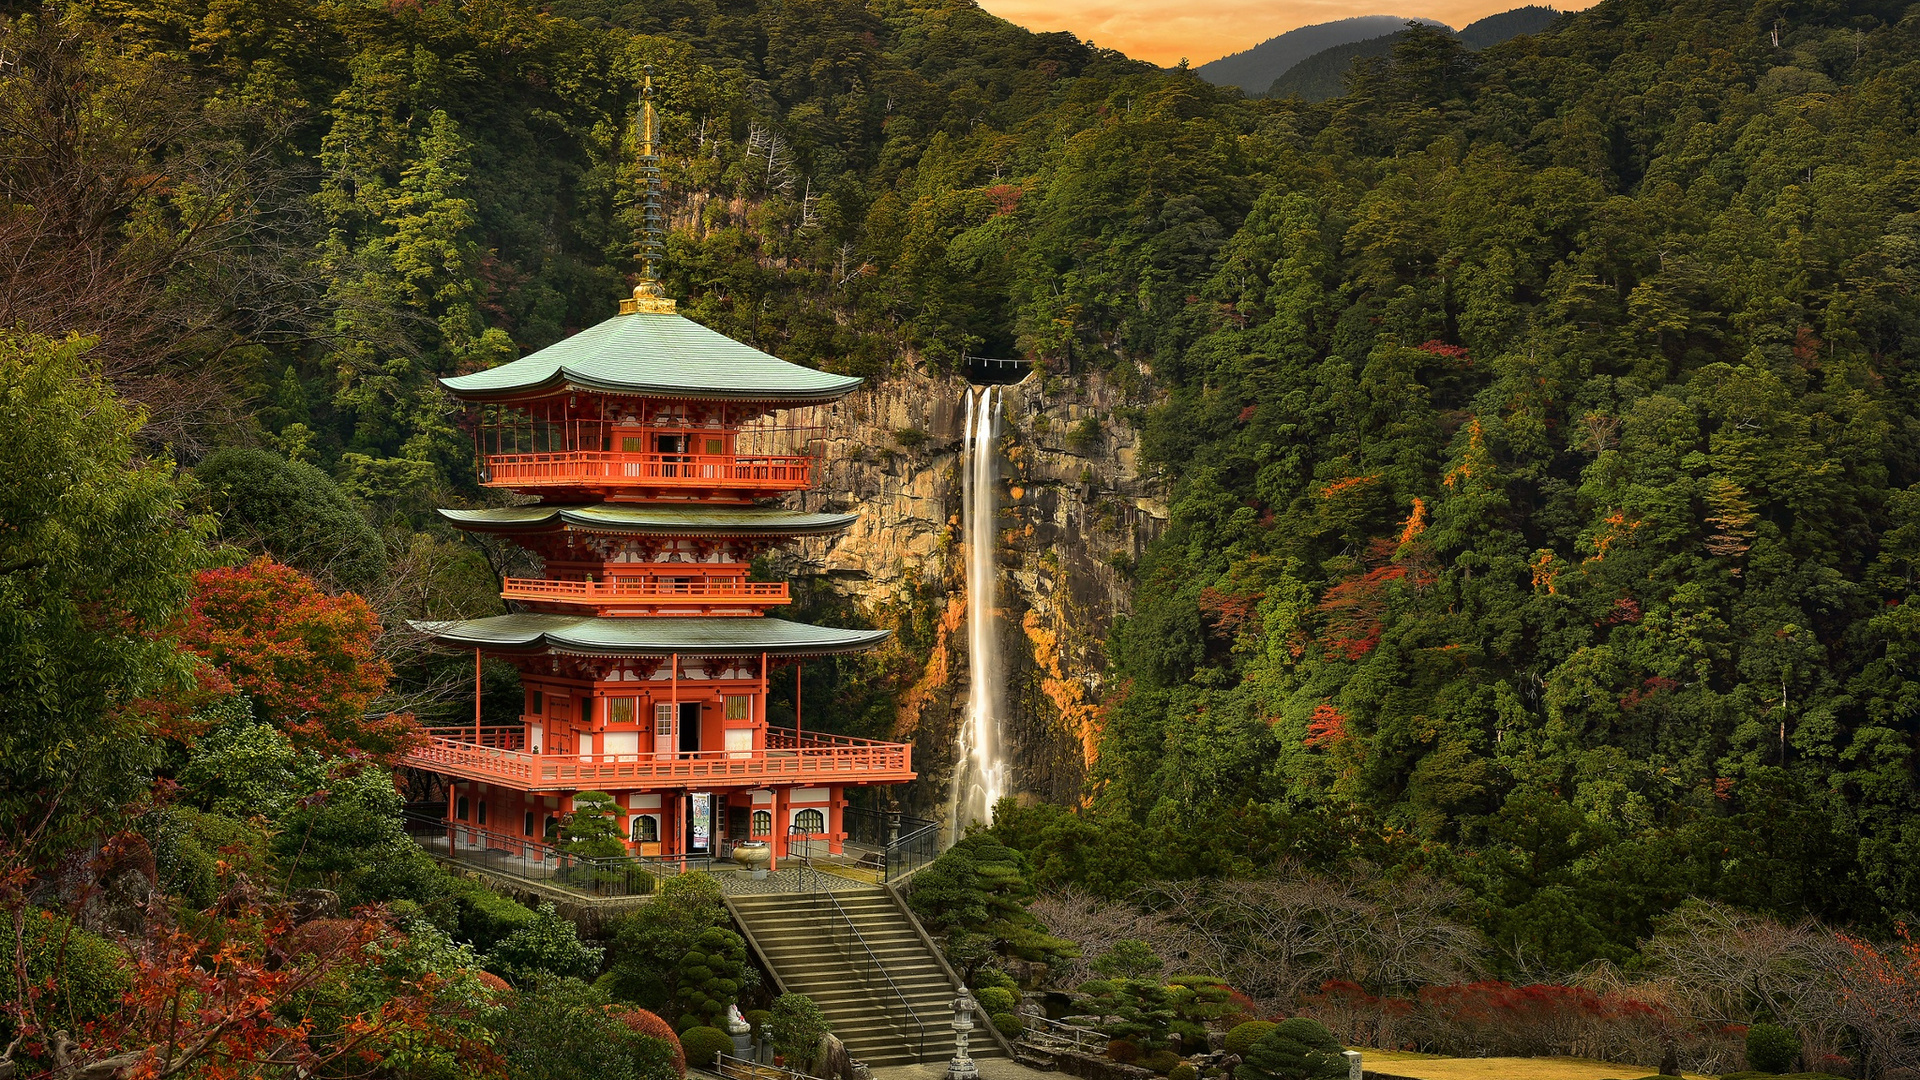 can-pictures-of-buist-temples-of-japan-butts-bikinis-fart